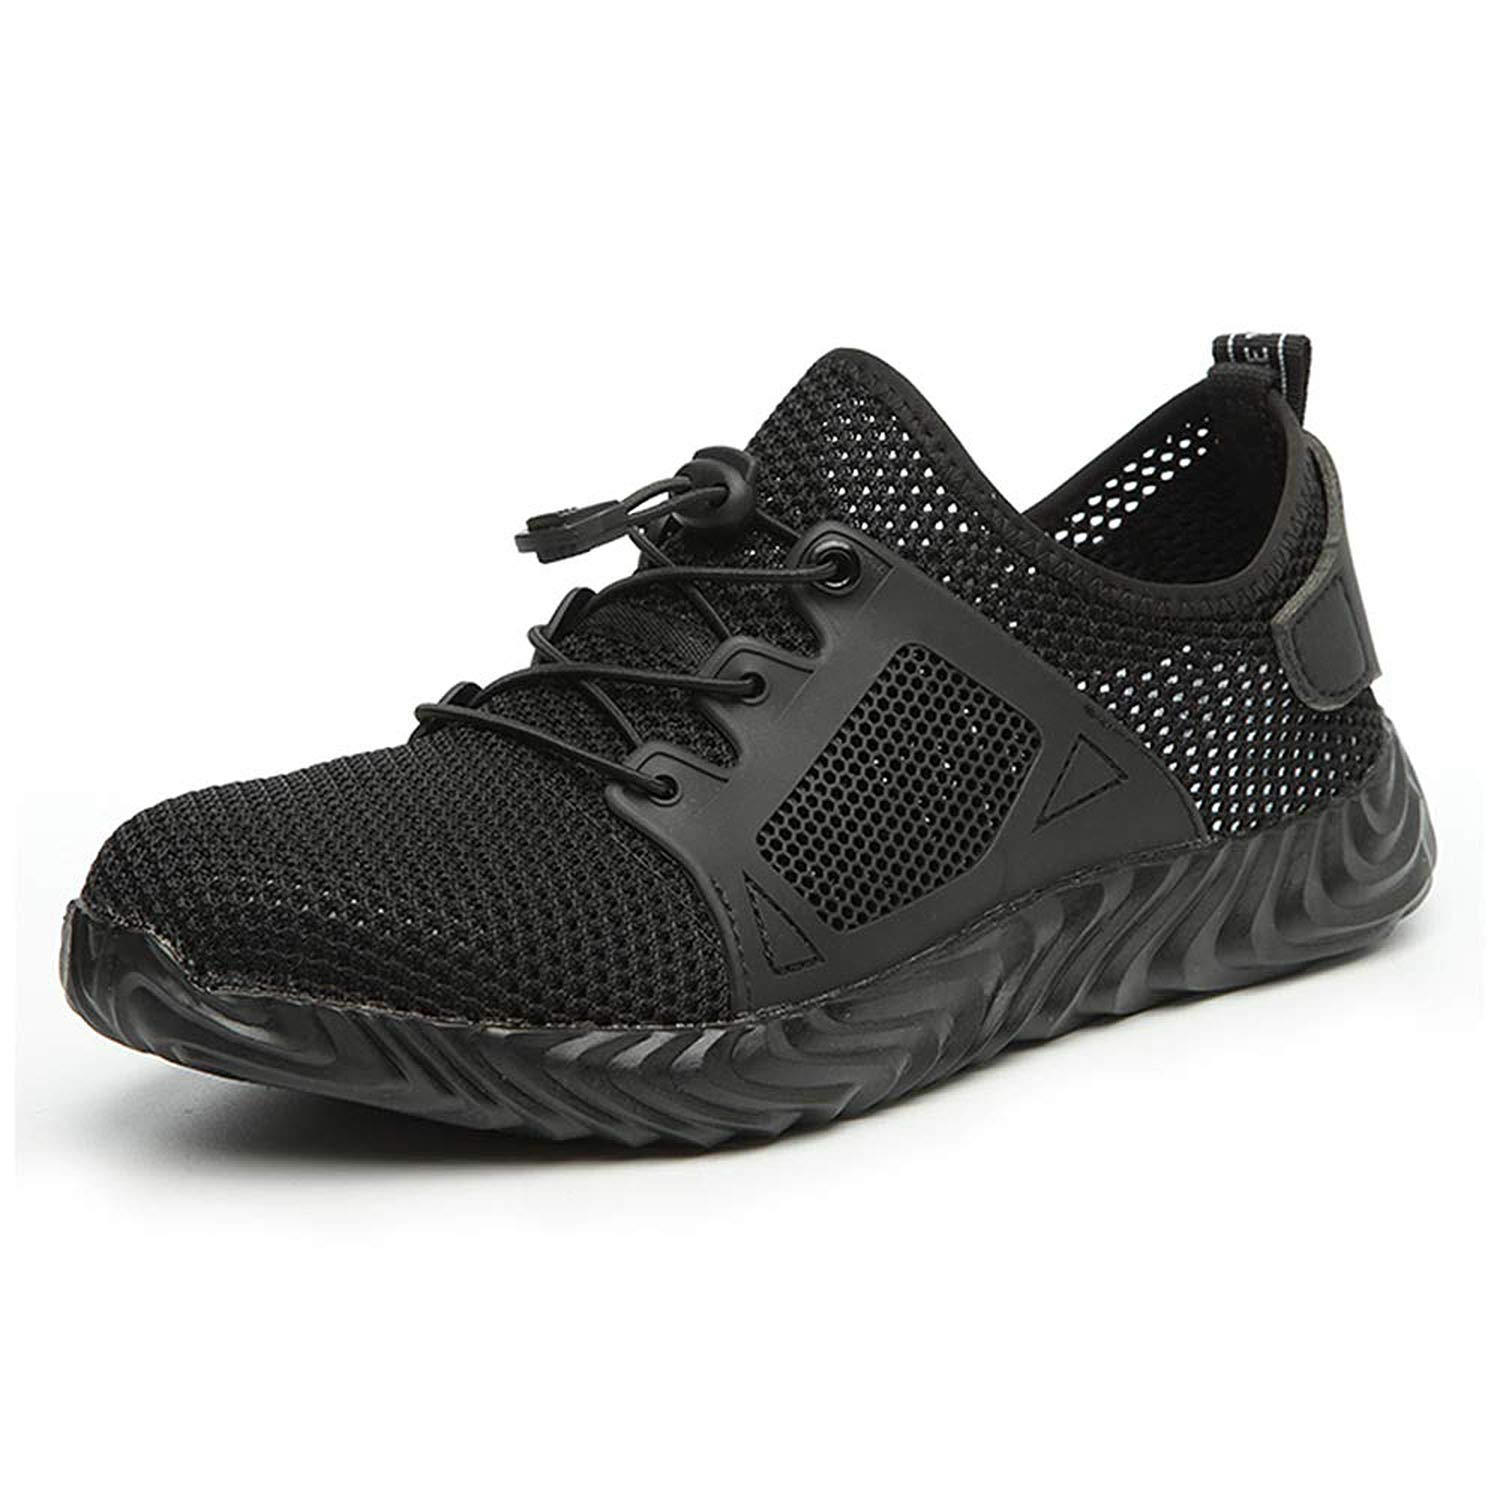 UCAYALI Steel Toe Work Shoes for Men Women Breathable Lightweight Safety Sneakers Construction Footwear